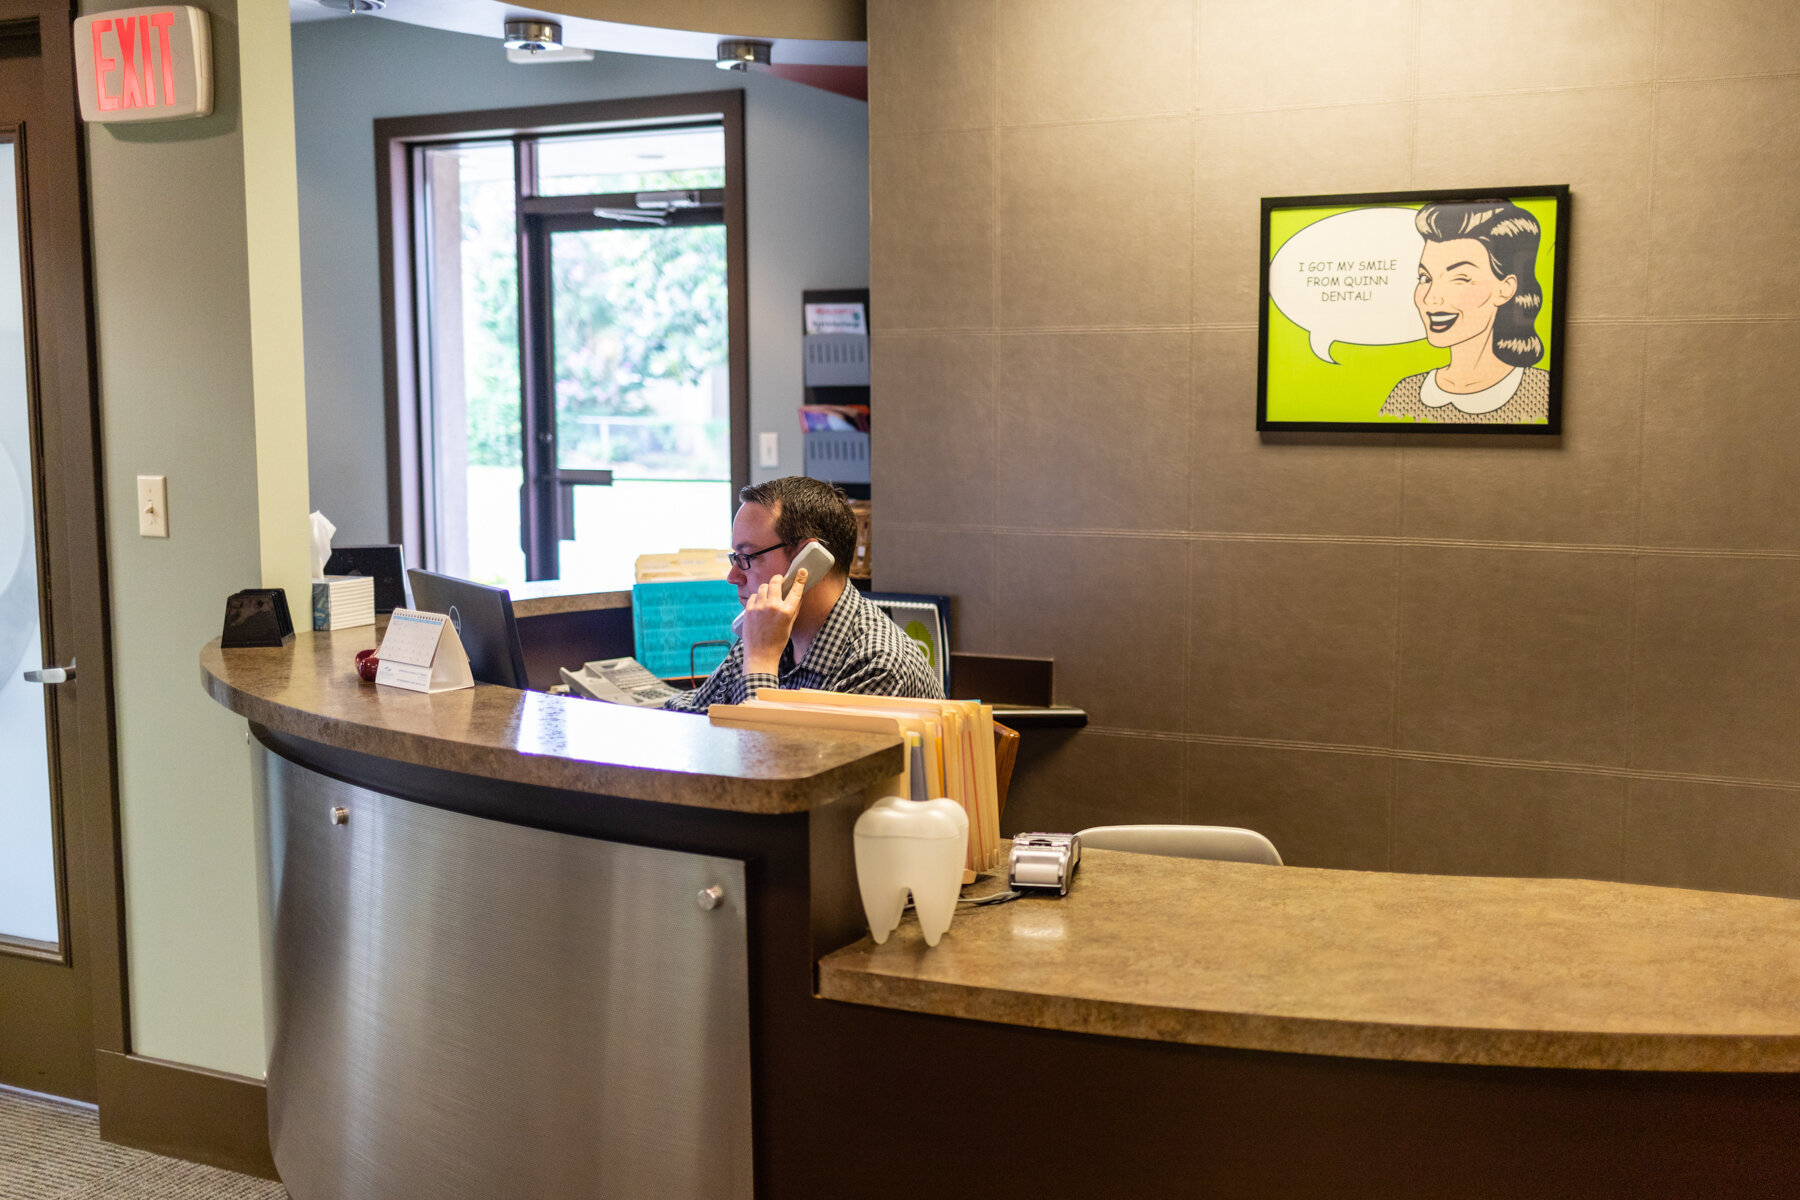 Jamie greets clients, sets appointments and takes care of payments.